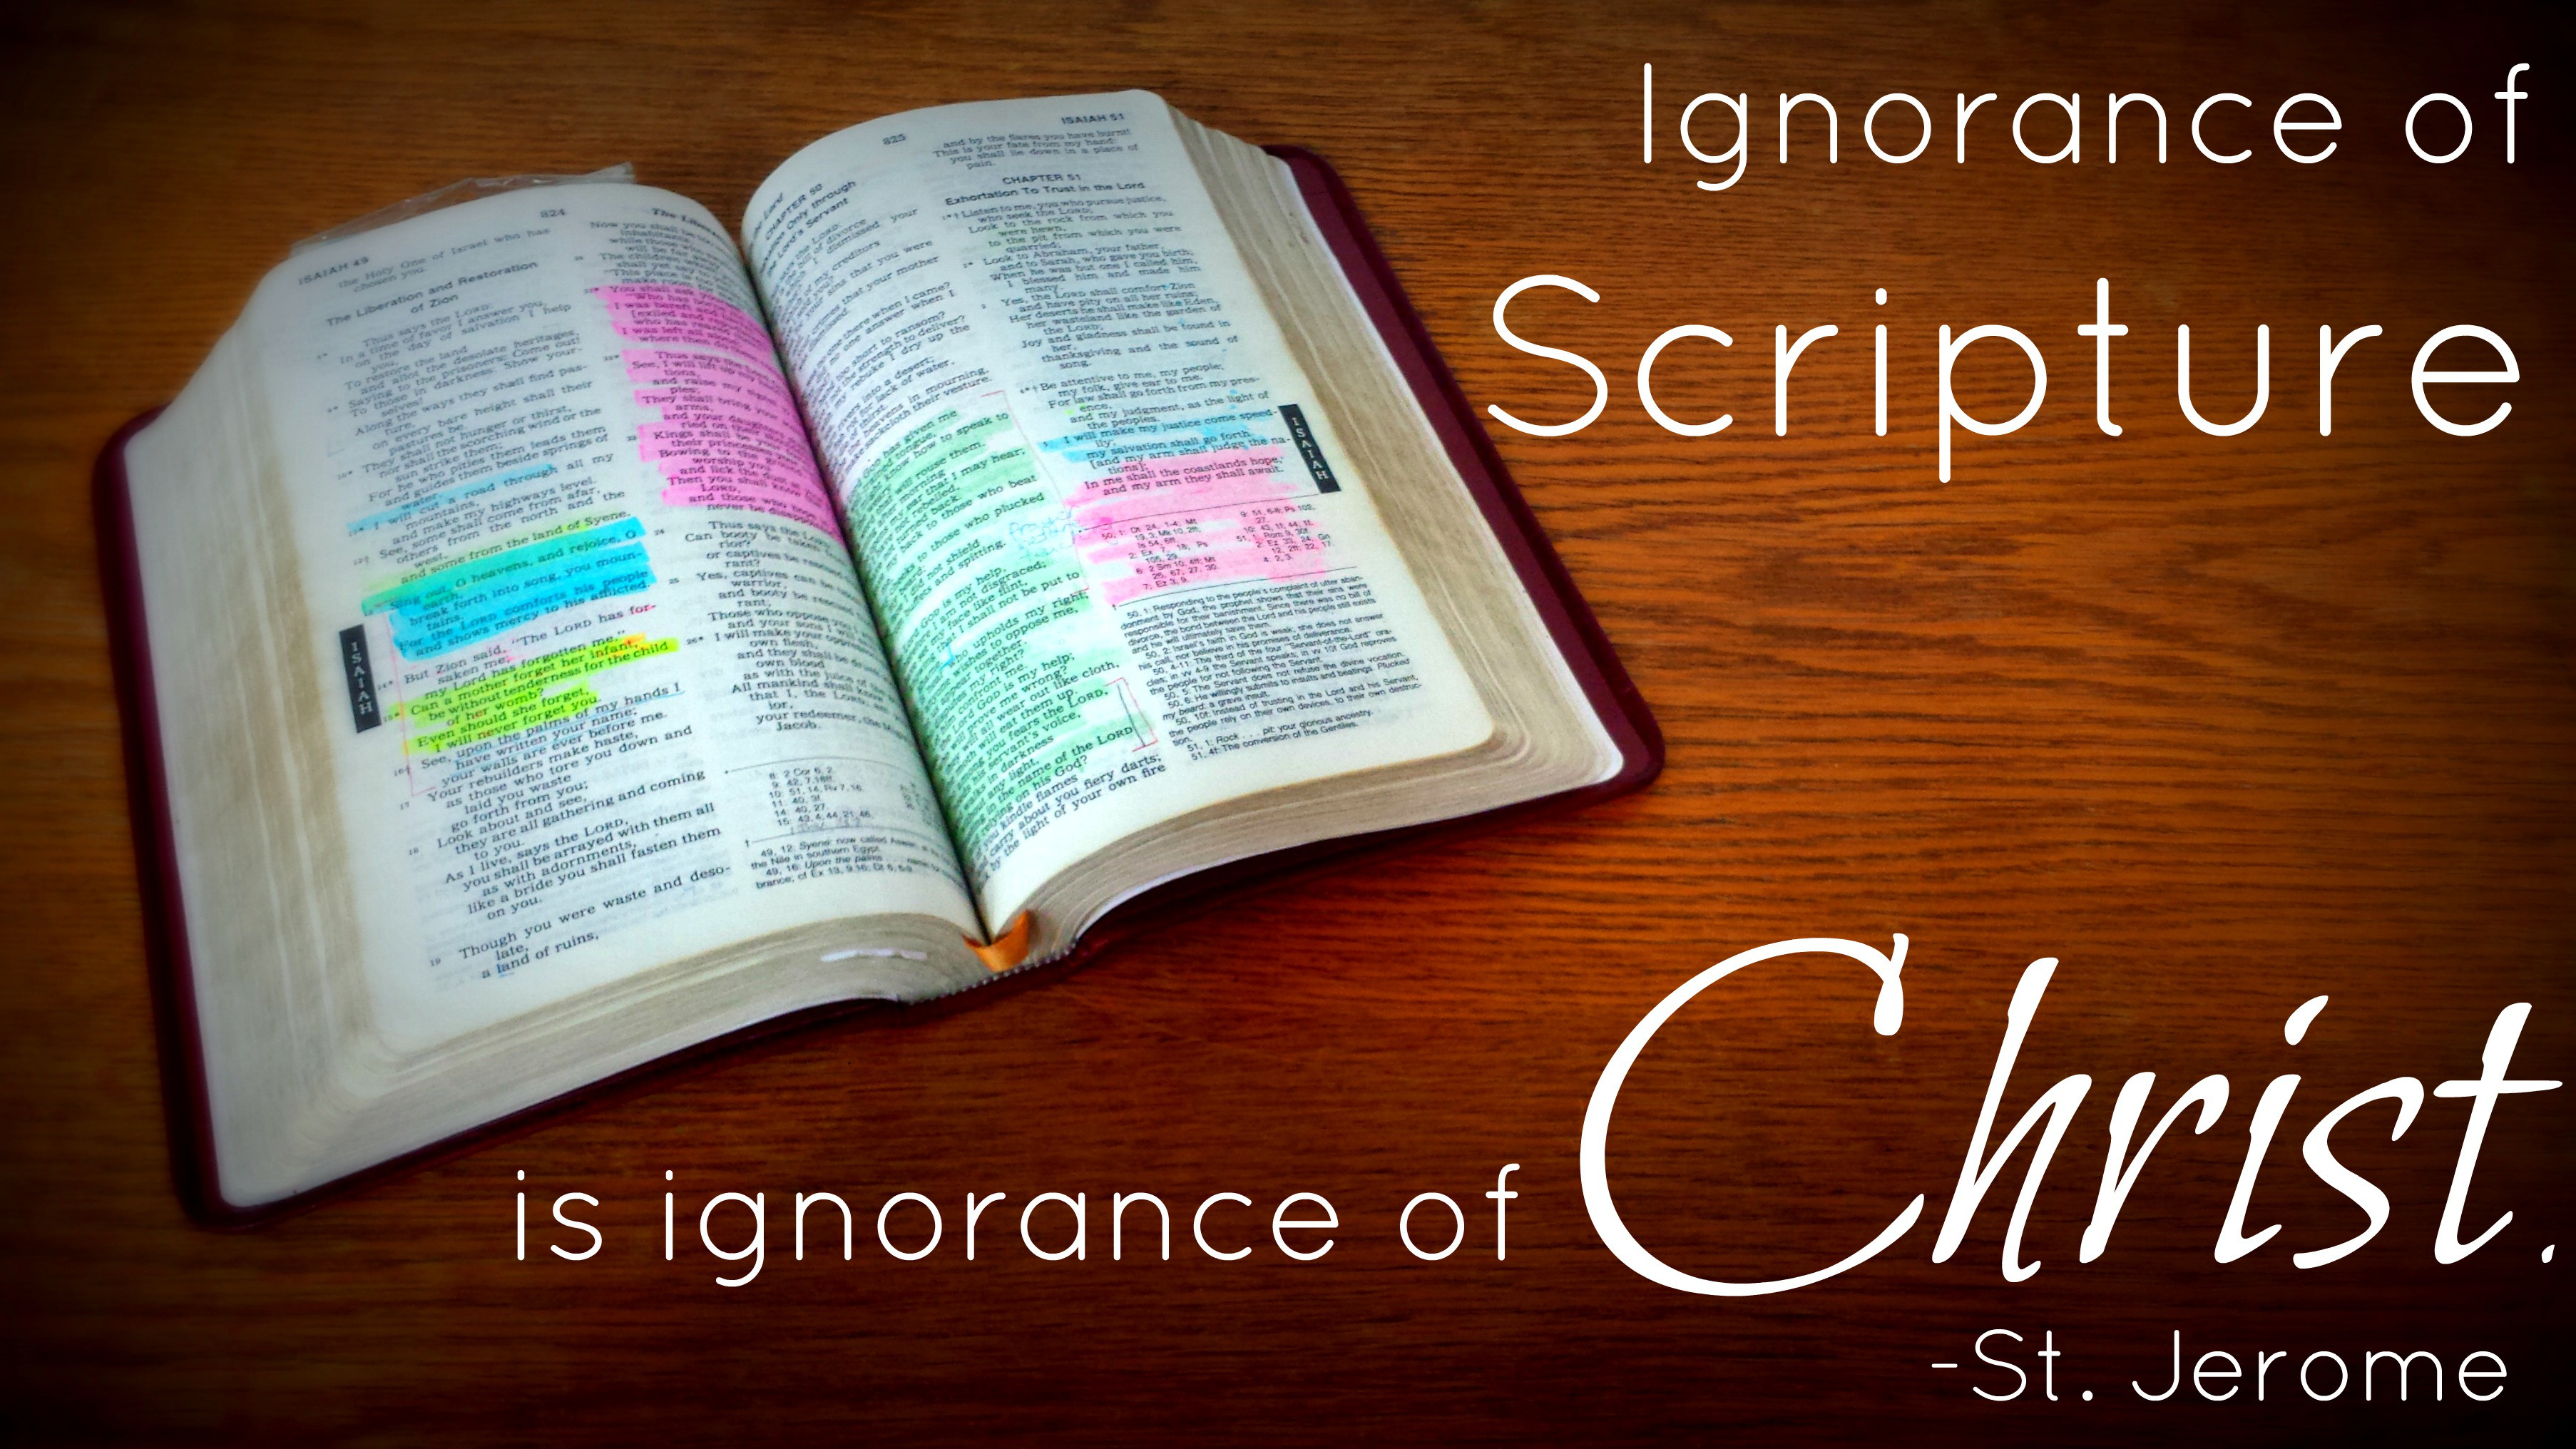 ignorance-of-scripture-jerome